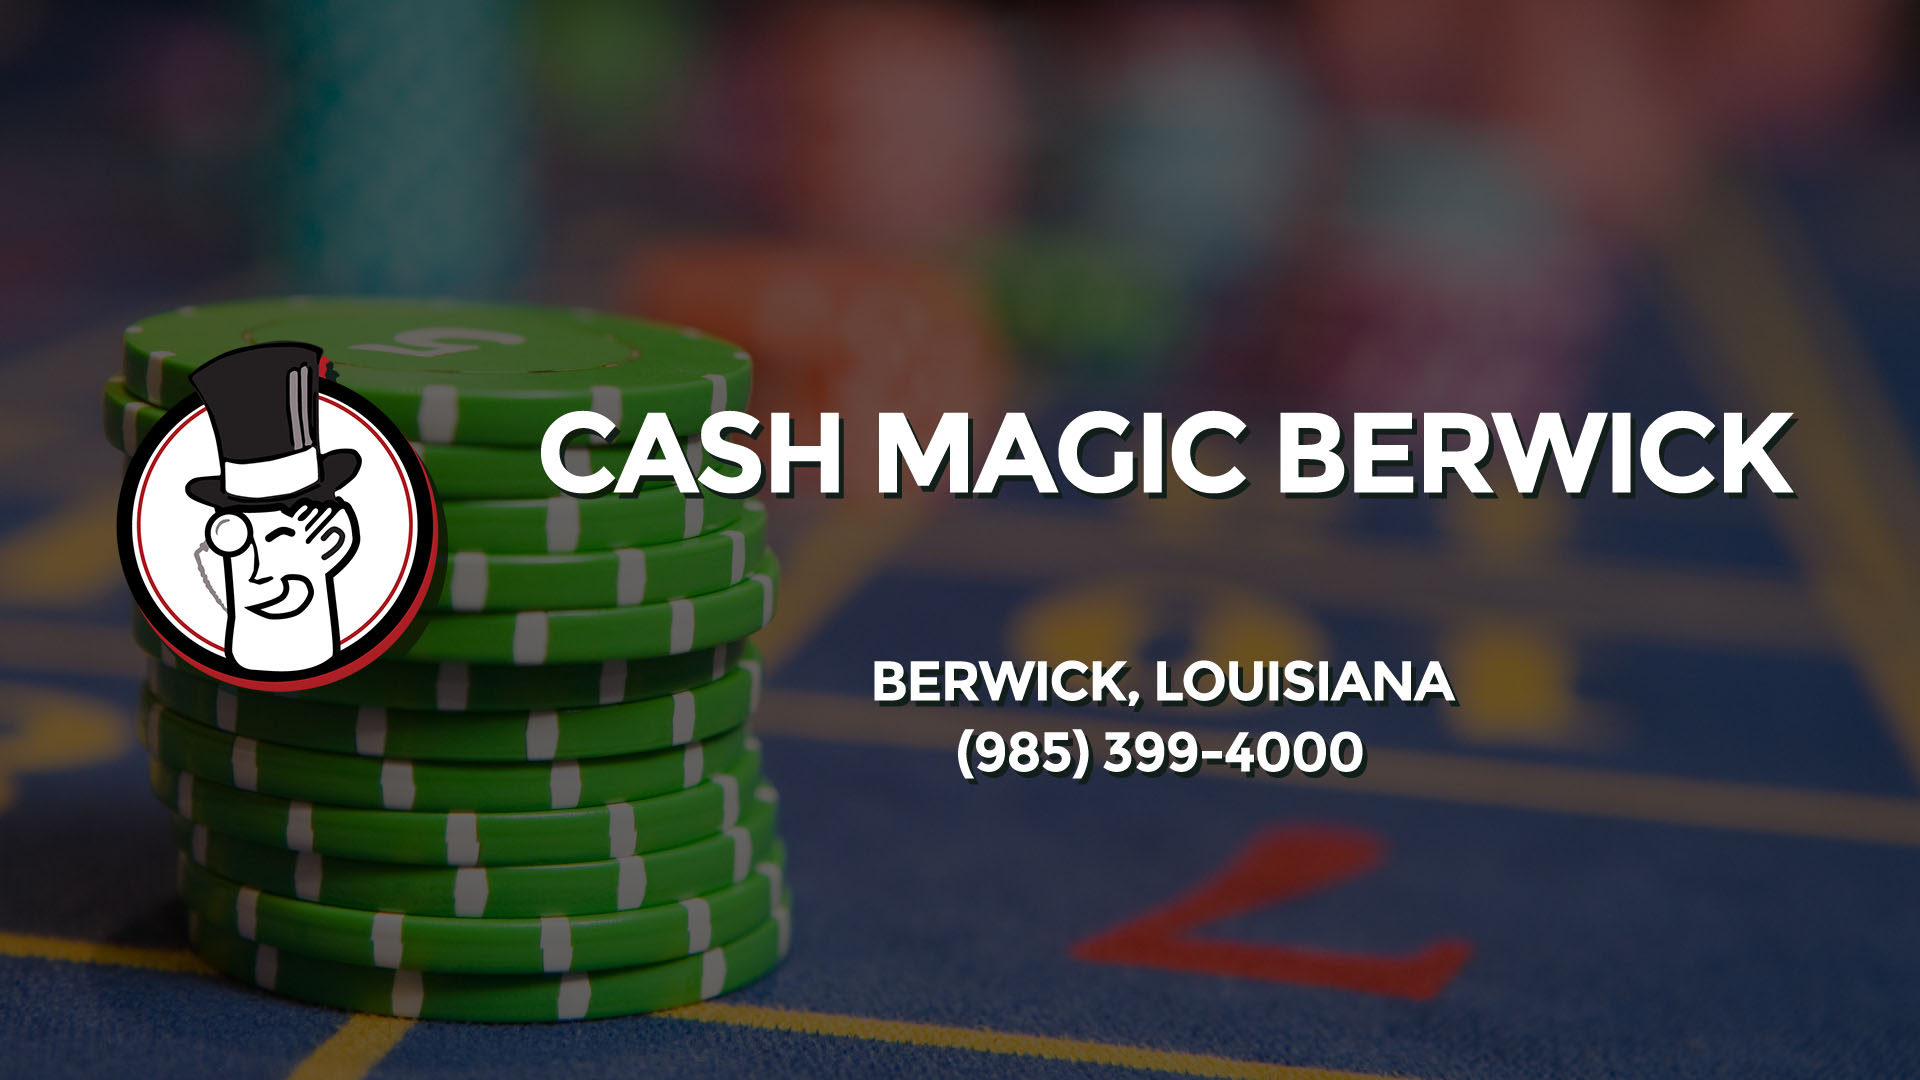 Jebetting poker tournaments php crypto currency price